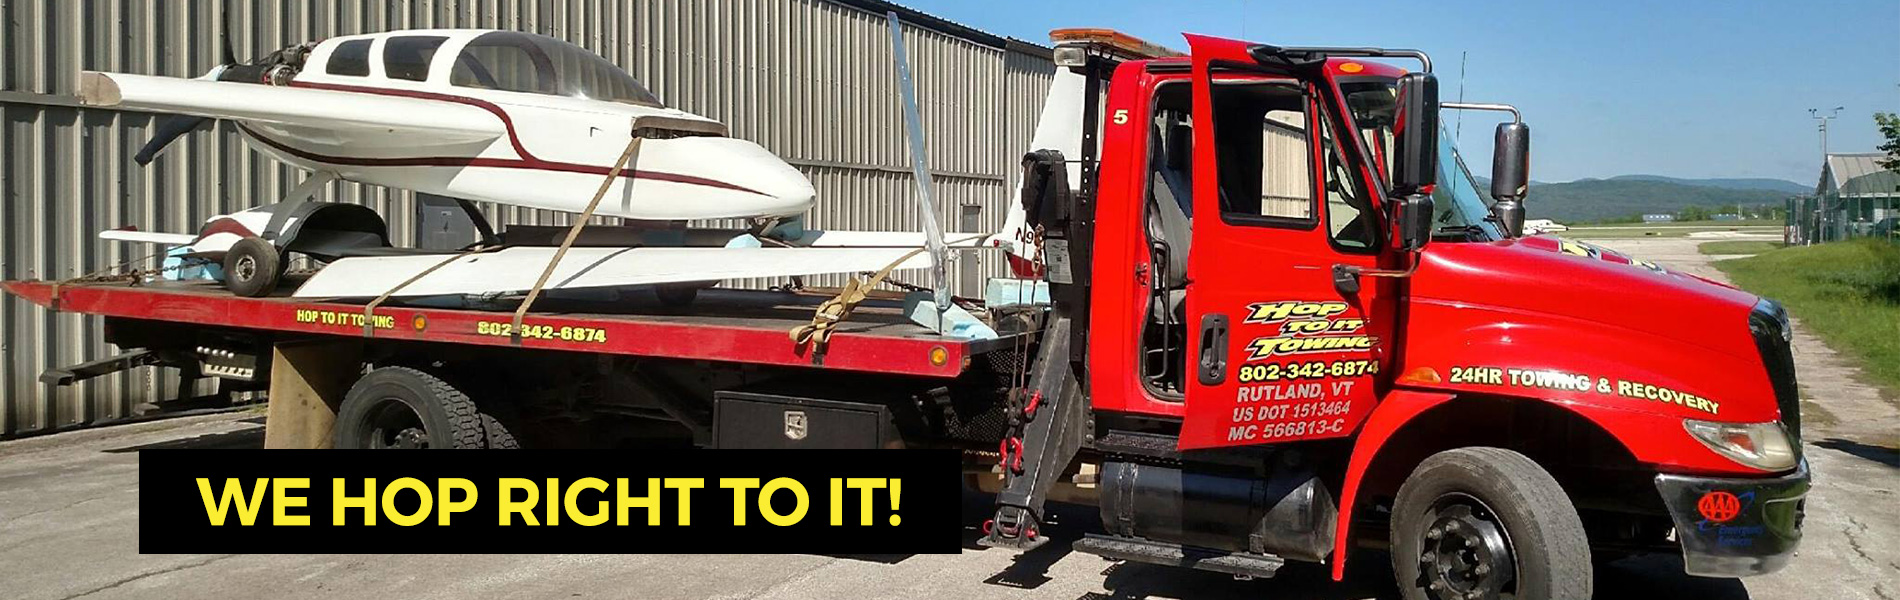 Towing Company in Rutland, VT | Salvaged Cars & Auto Parts